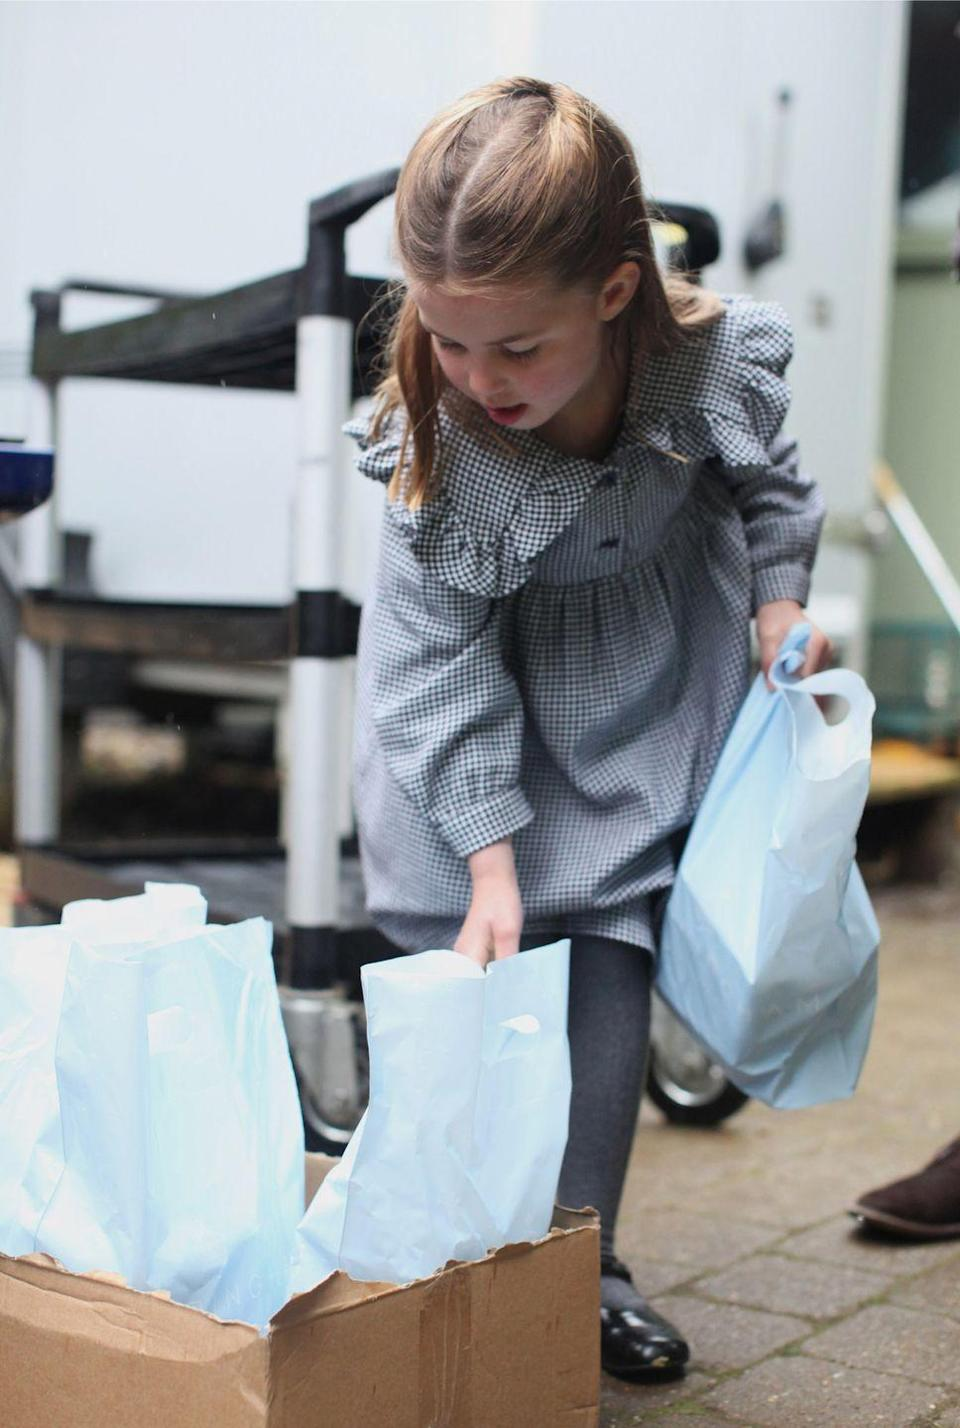 <p>The pictures were taken in April 2020 on the Sandringham Estate, and they show Princess Charlotte volunteering during the coronavirus crisis.</p>